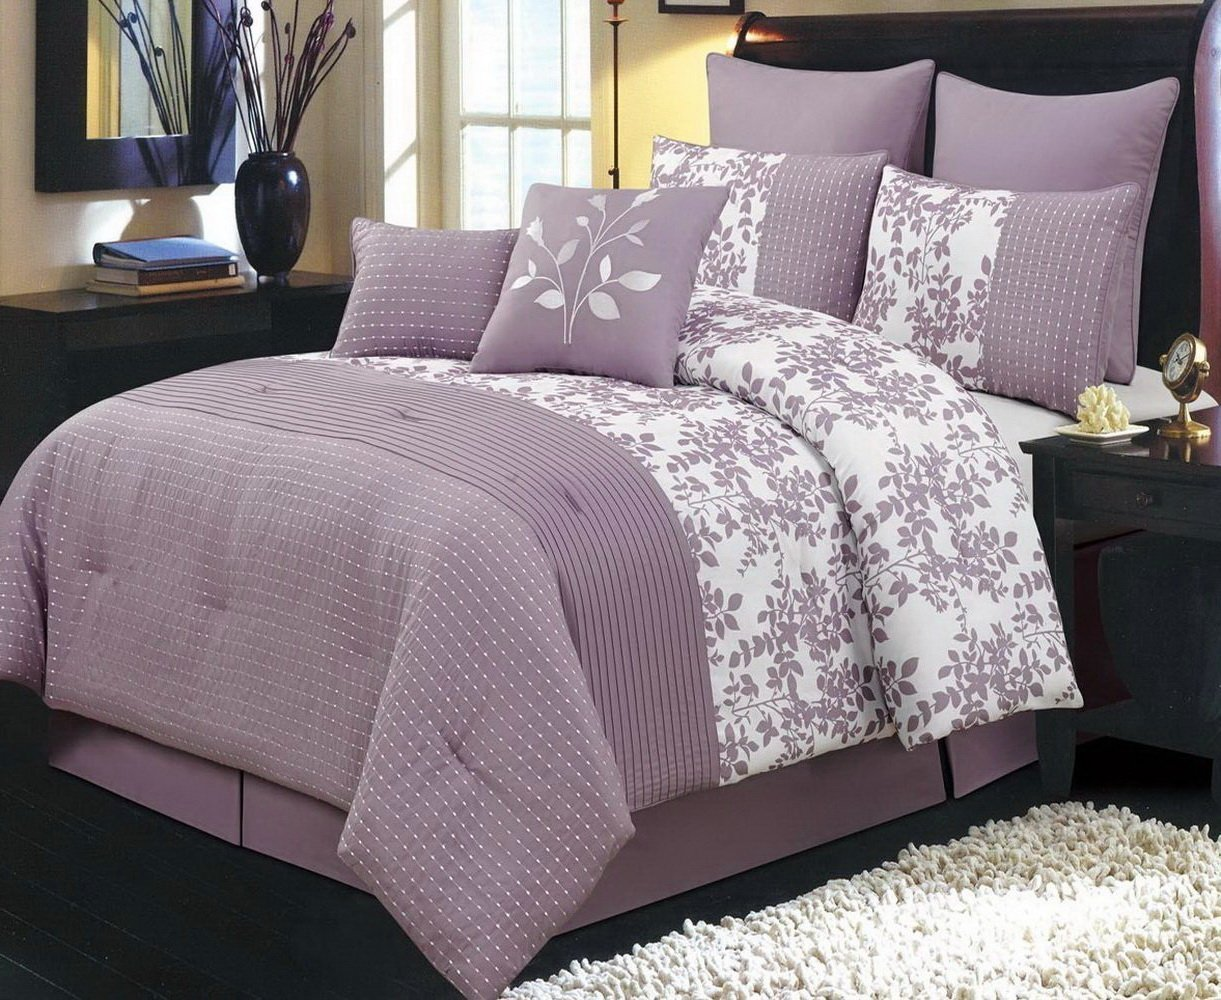 Comforter Set 8 Piece Queen Size (90x92) Luxury Complete Bed Set - with Shams Bed Skirt and Decorative Pillows - Modern Floral Leaf Pattern Oversized Bedding Plum Purple